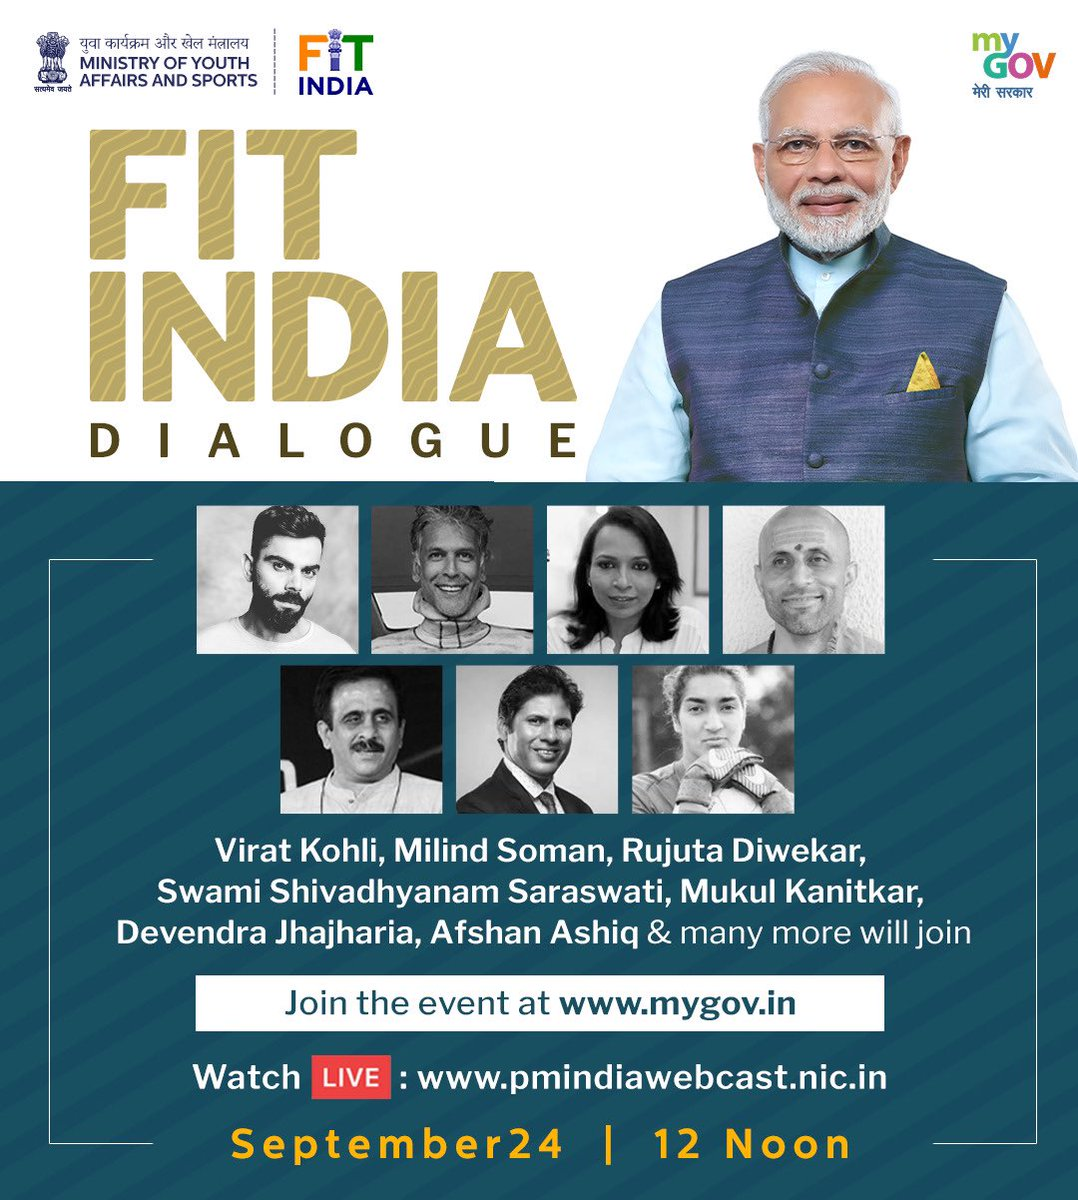 Looking forward to the Fit India Dialogue, which begins at noon today, 24th September.   It brings together fitness influencers and enthusiasts for a fruitful discussion on how to remain fit and healthy.   Don't miss this one! #NewIndiaFitIndia https://t.co/2cB2lpHNkU